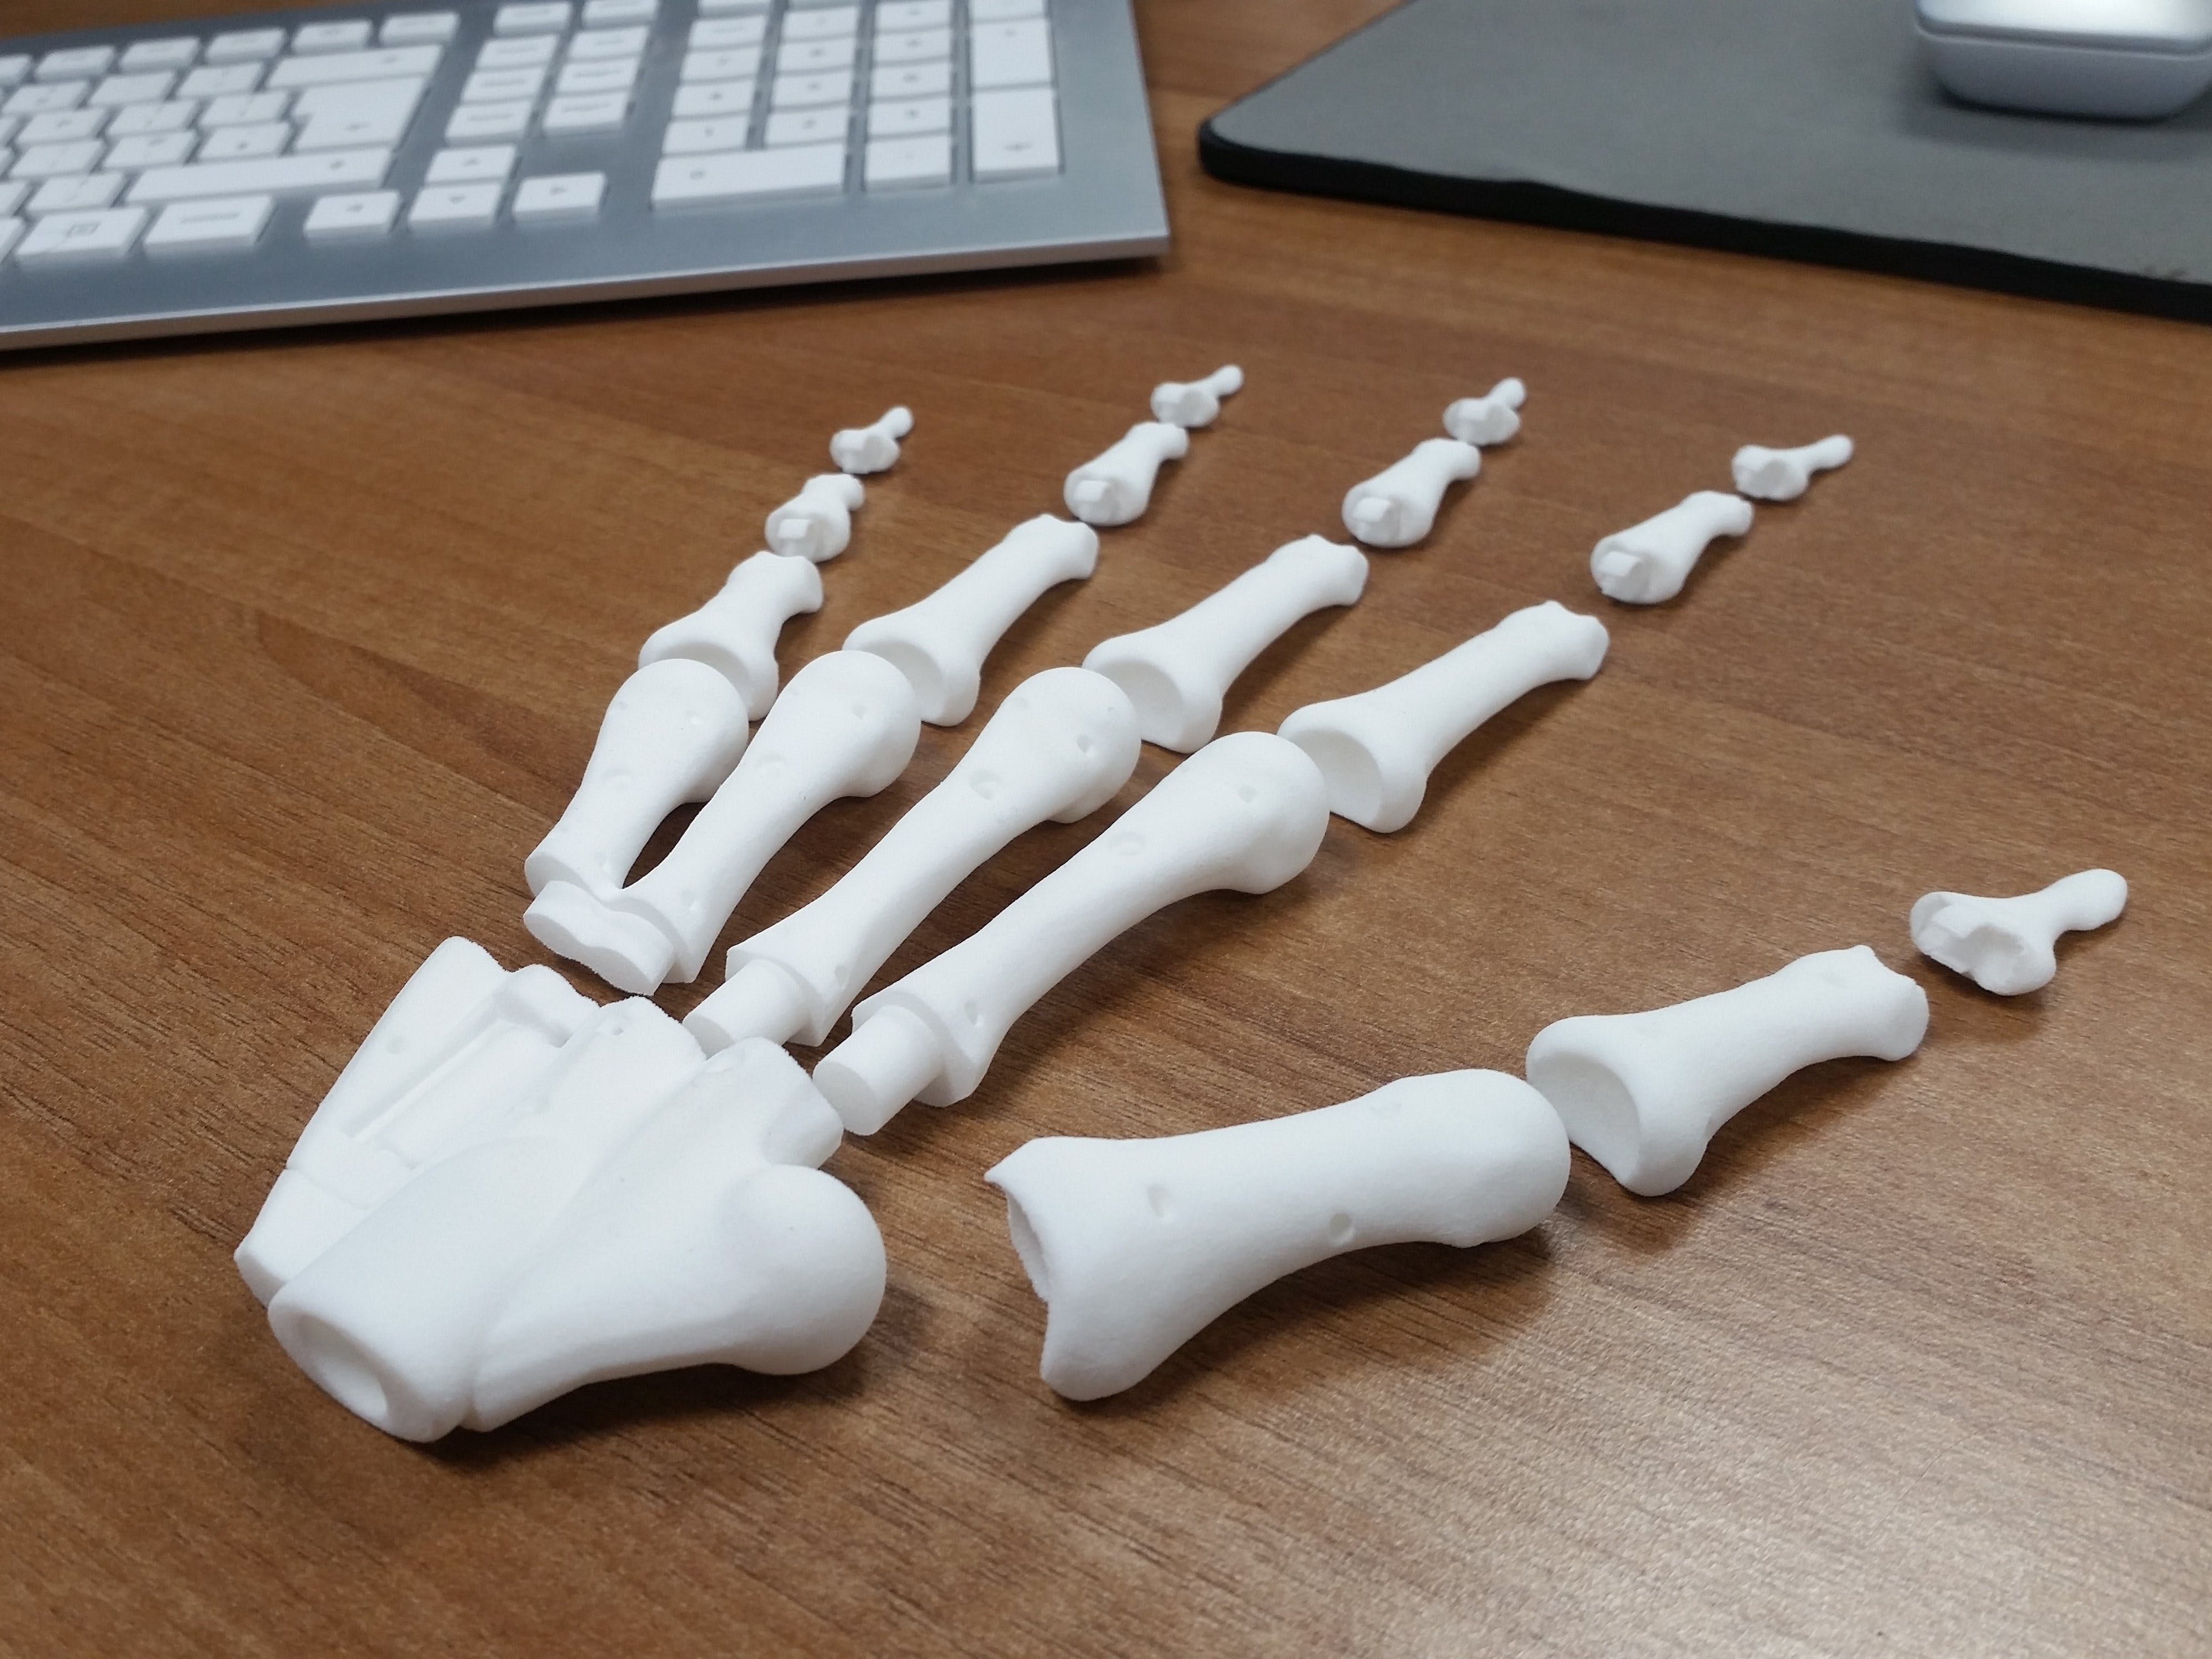 Bio-Mechanical Anatomical Hand Kinematics